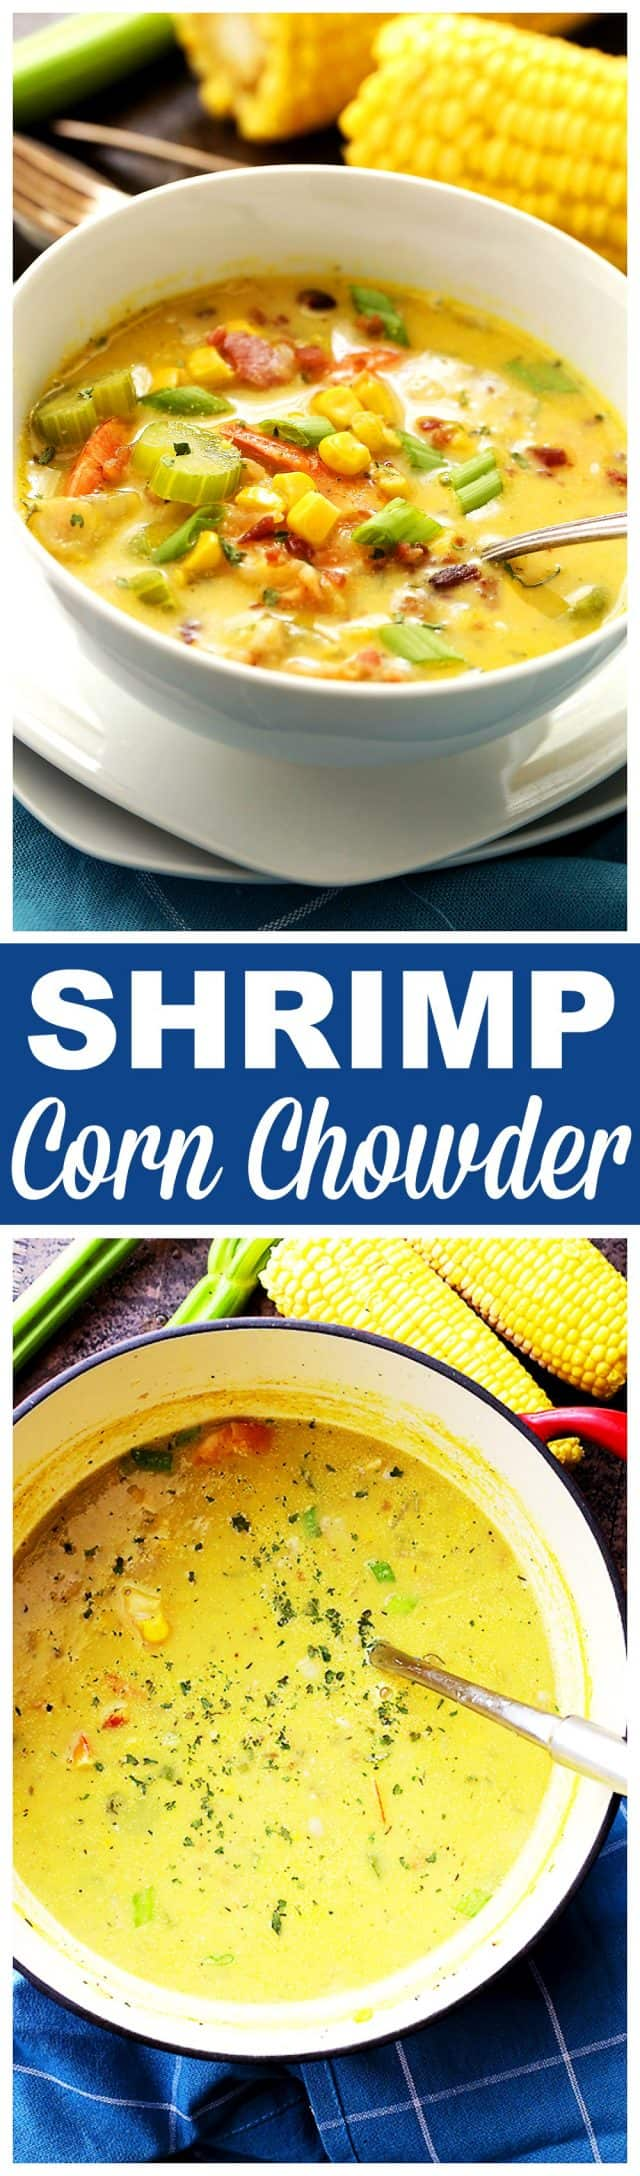 Shrimp Corn Chowder - Loaded with fresh corn, bacon and shrimp, this smoky sweet corn chowder is easy and delicious, and ready in about 30 minutes!